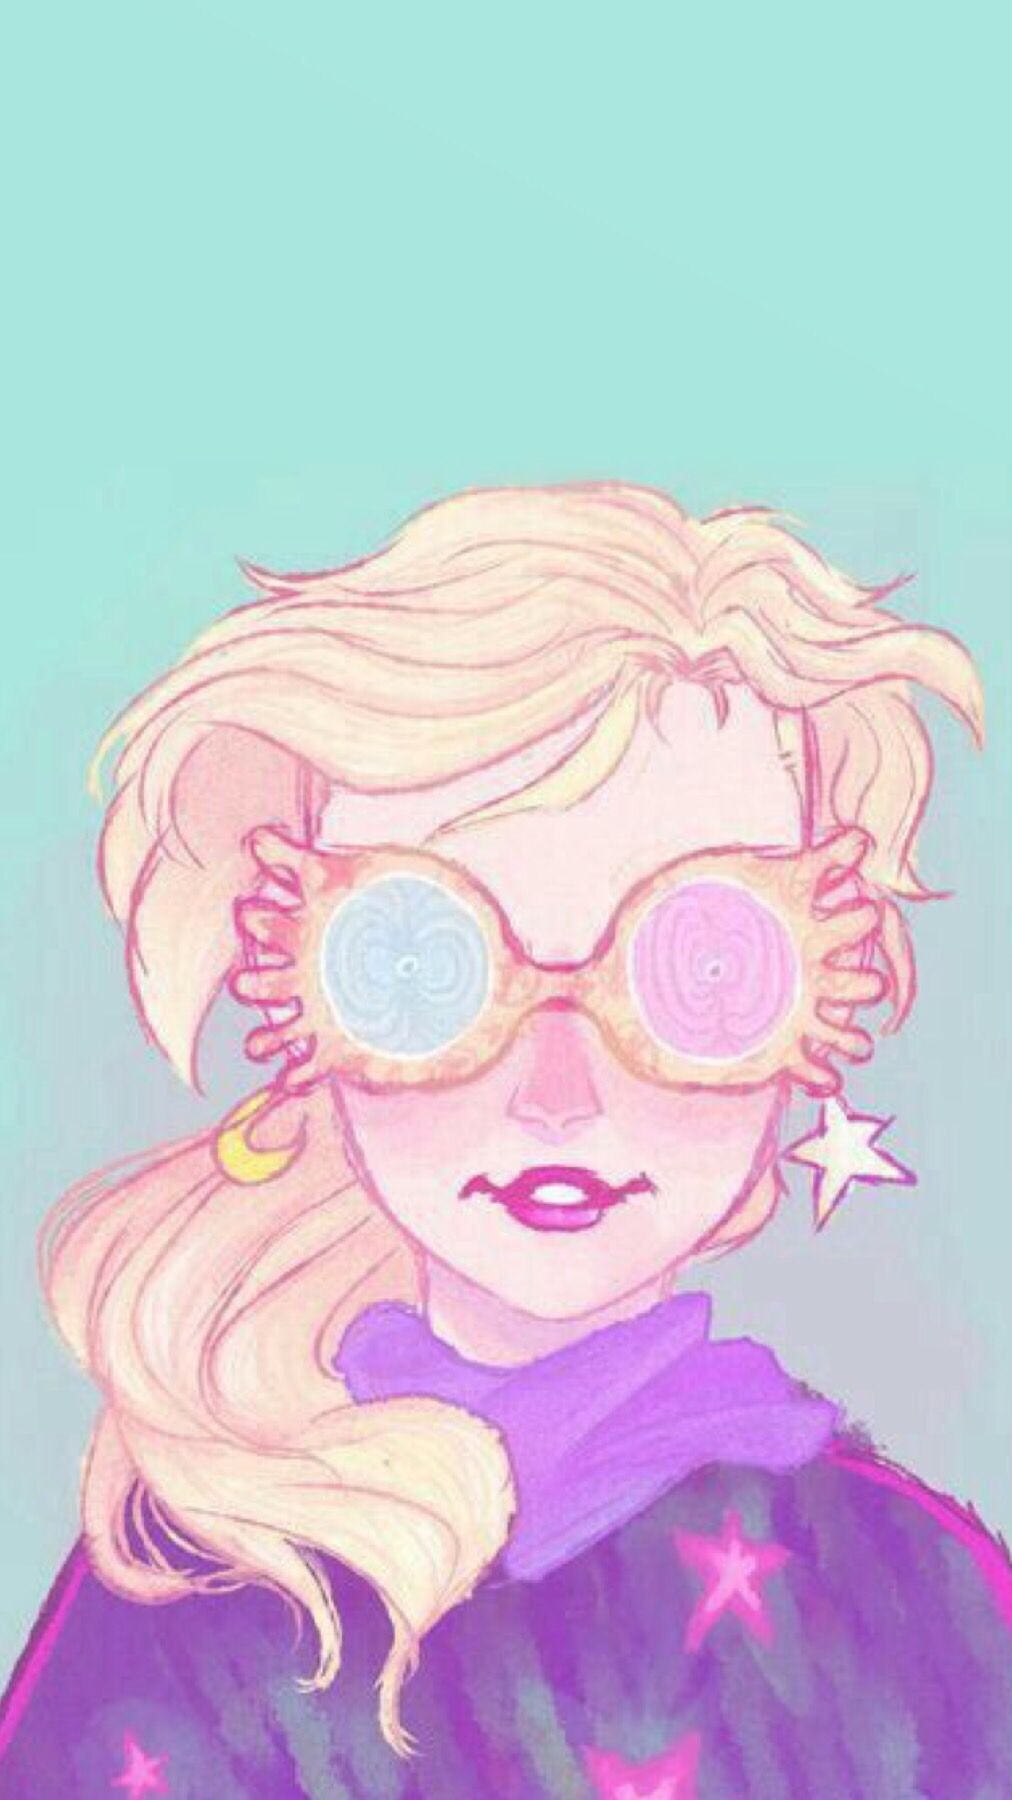 Luna Lovegood From Harry Potter Phone Wallpaper Harry Potter Drawings Harry Potter Art Harry Potter Characters